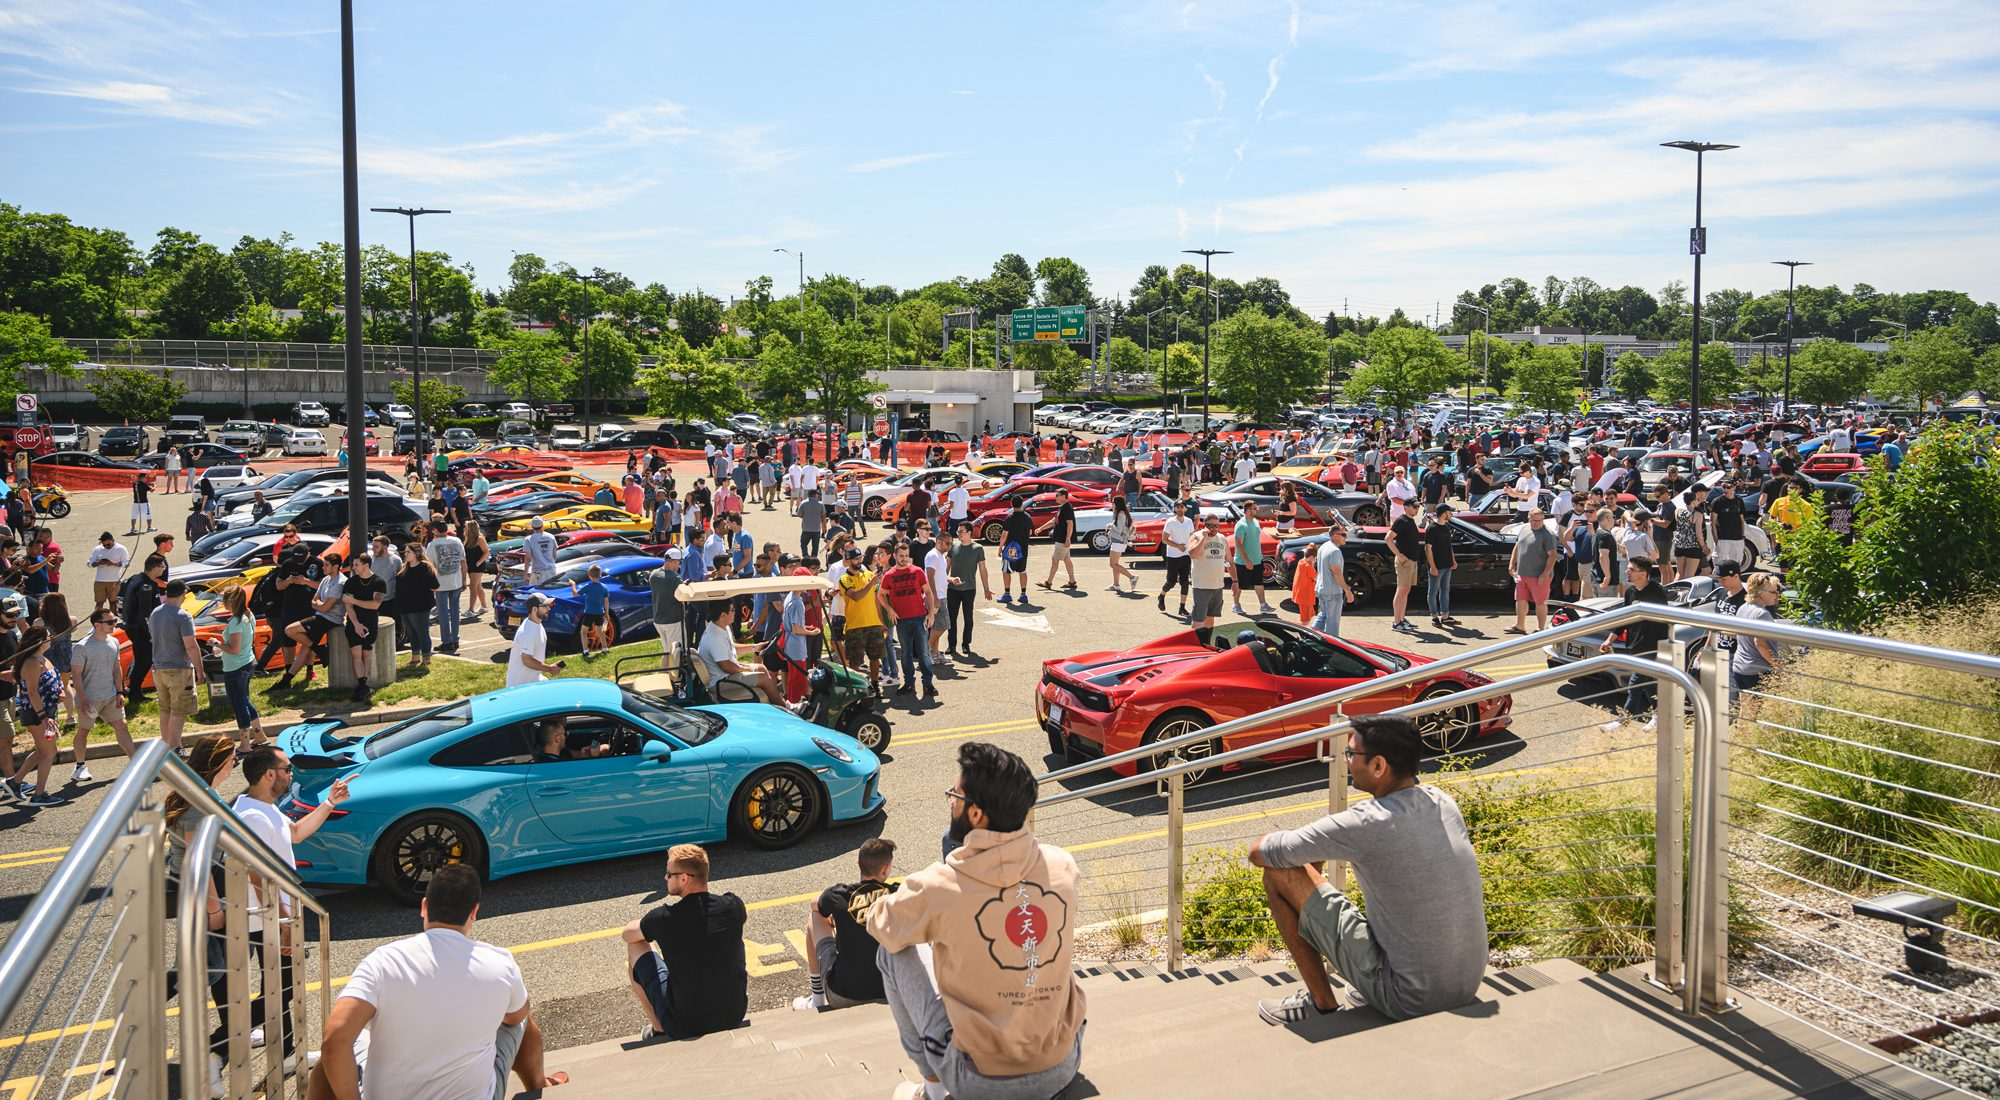 A tour of the biggest car show on the east coast